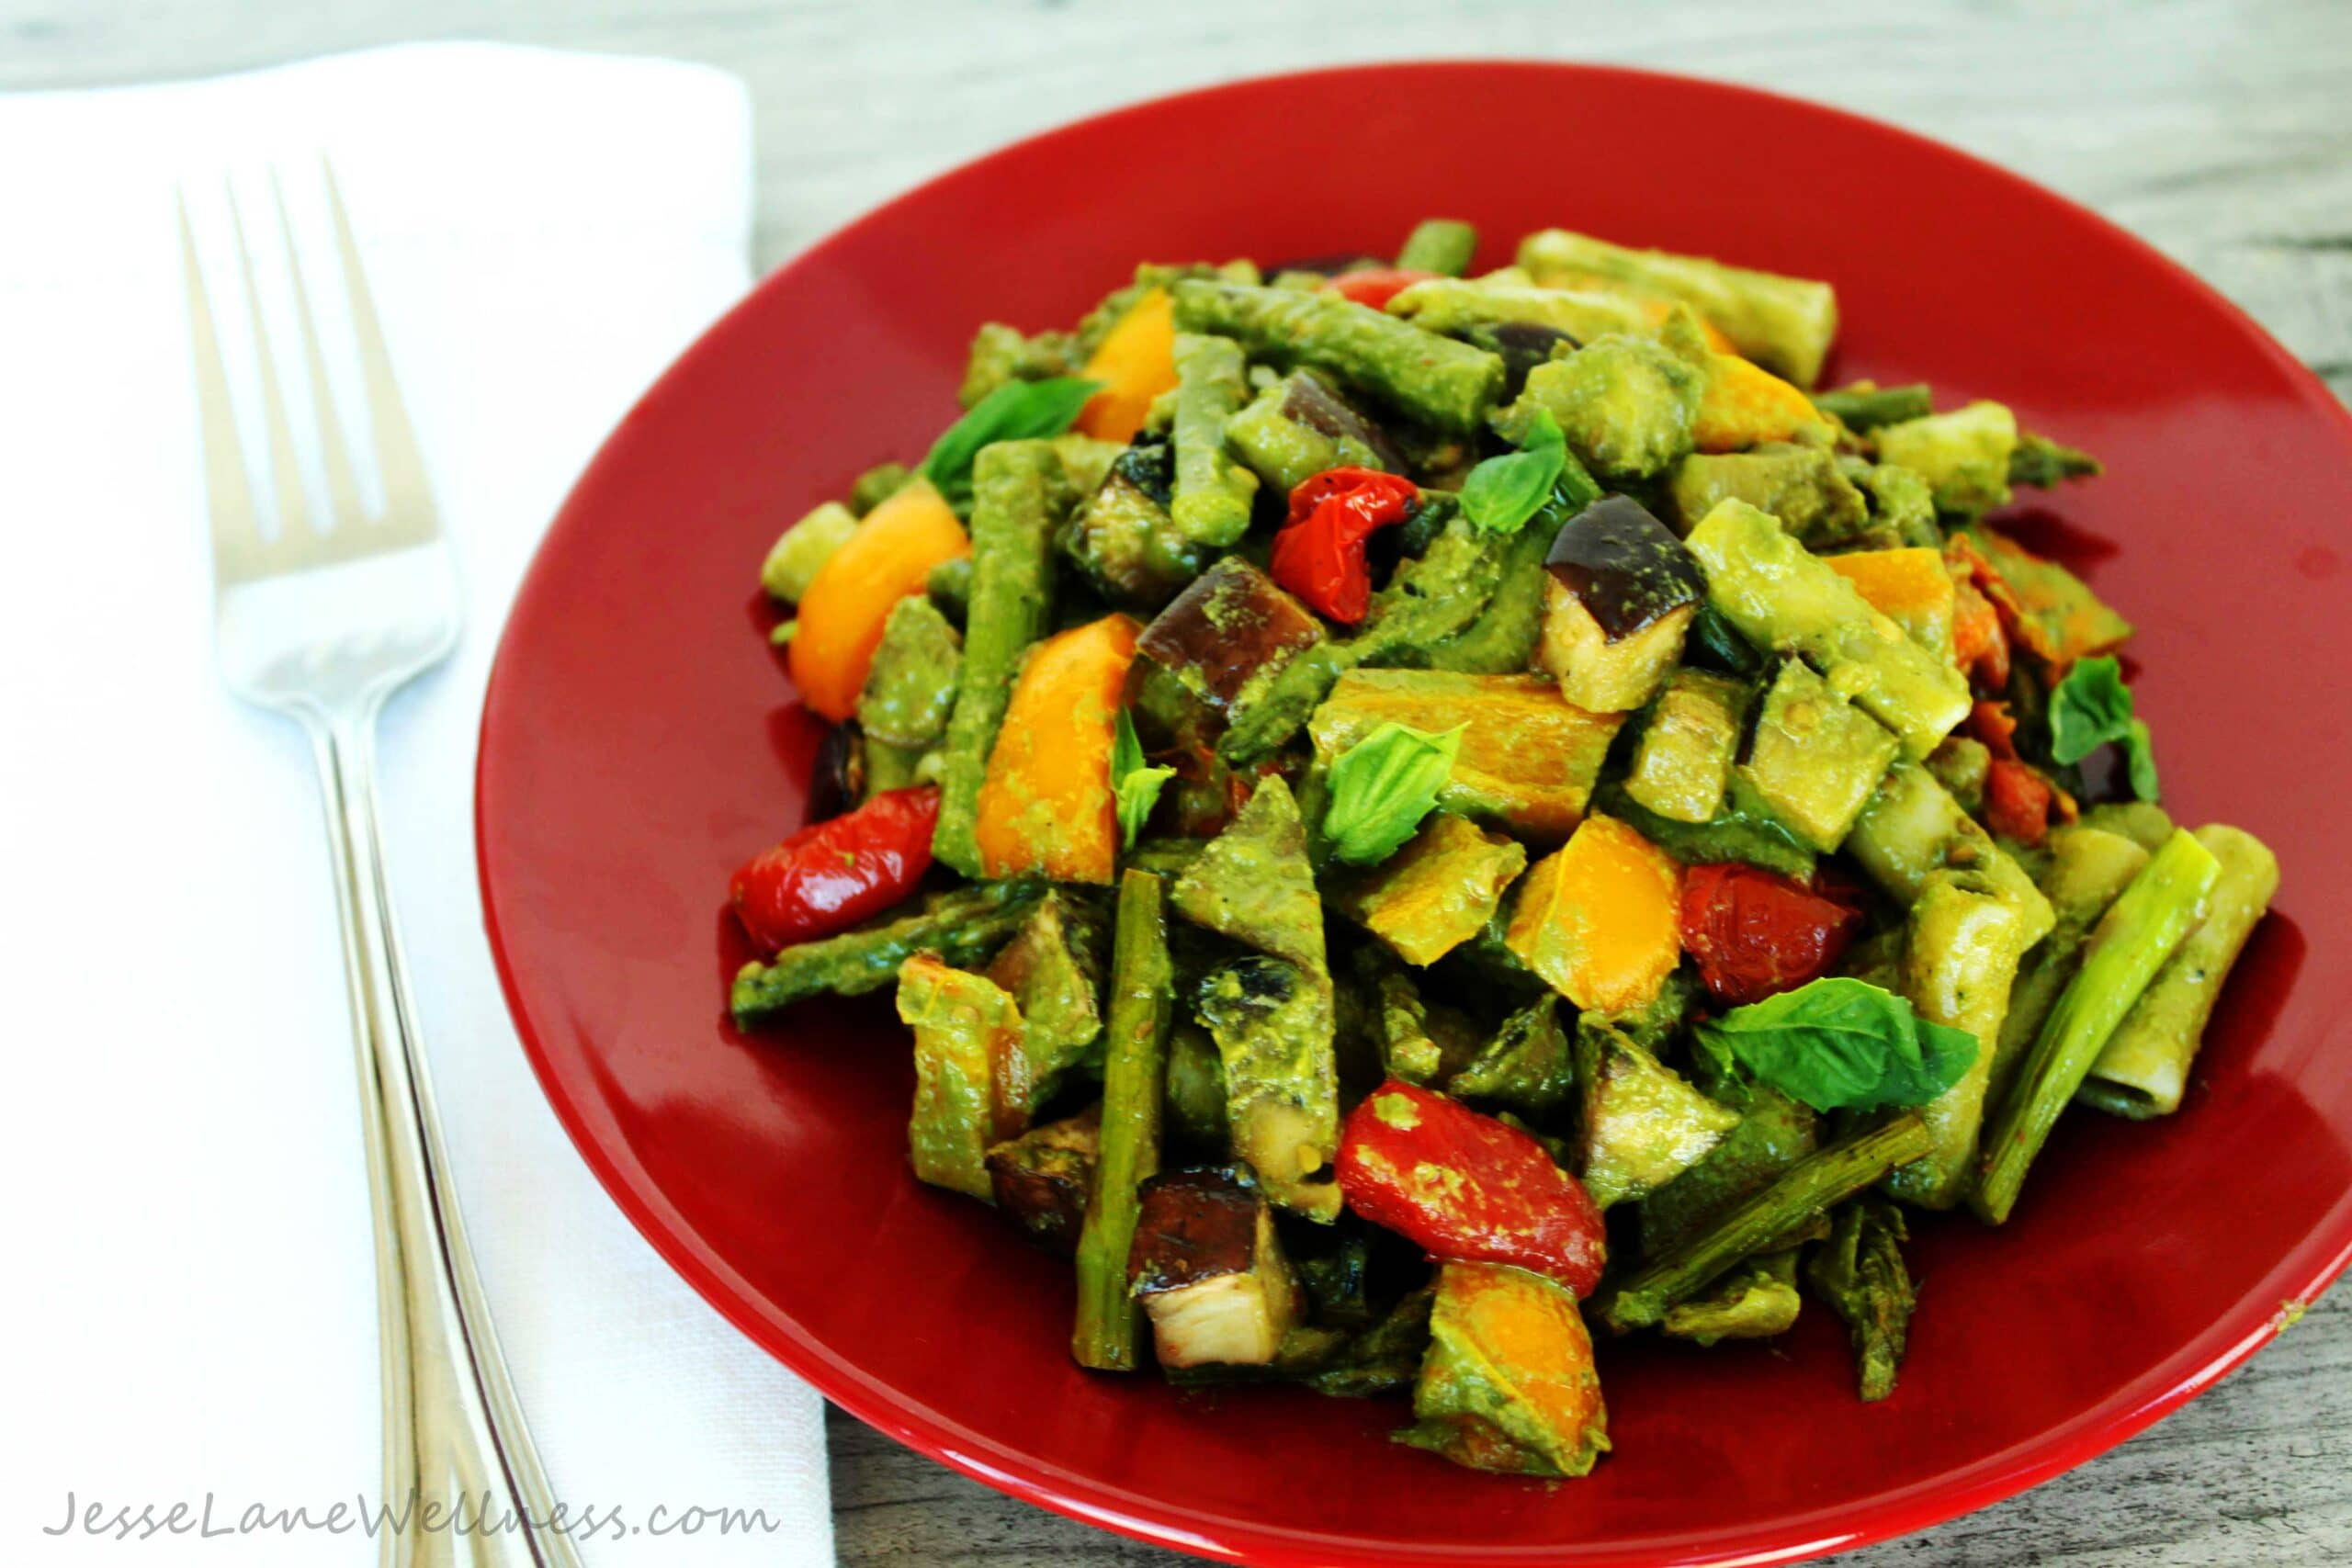 Pesto Primavera with Roasted Veggies by @JesseLWellness #pasta #glutenfree #pestopasta